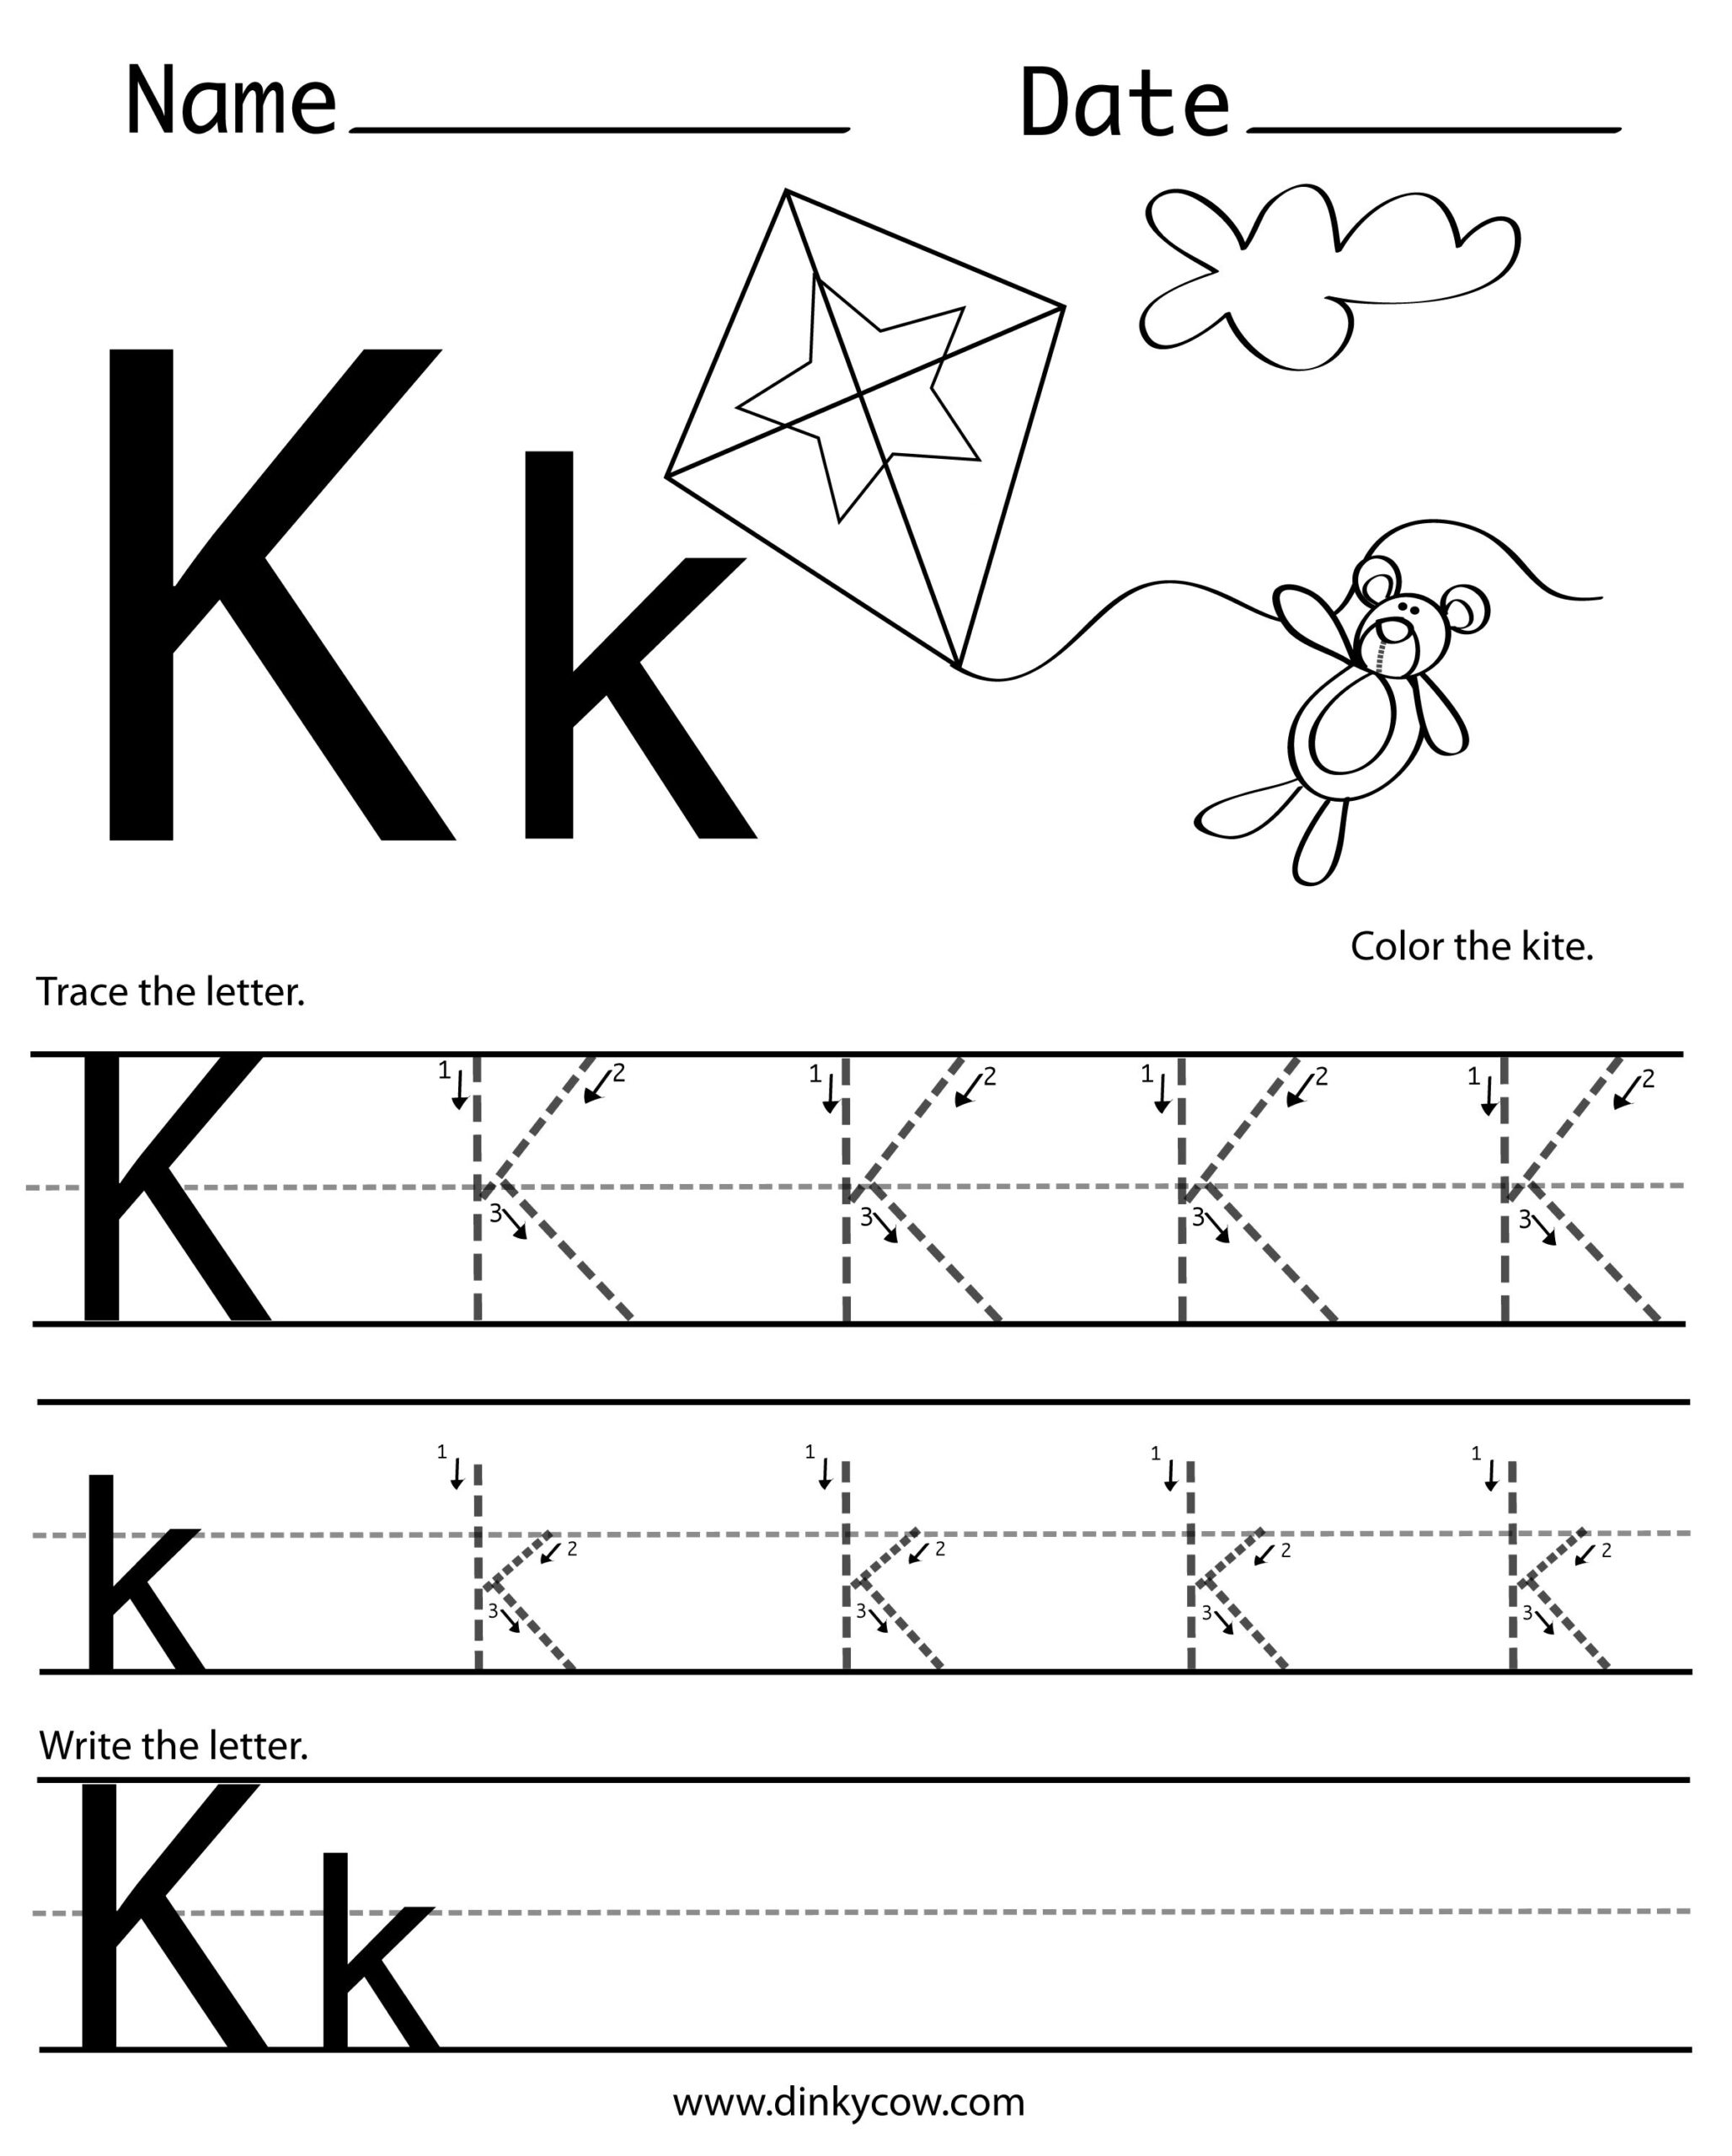 K-Free-Handwriting-Worksheet-Print 2,400×2,988 Pixels regarding Letter K Worksheets For Prek